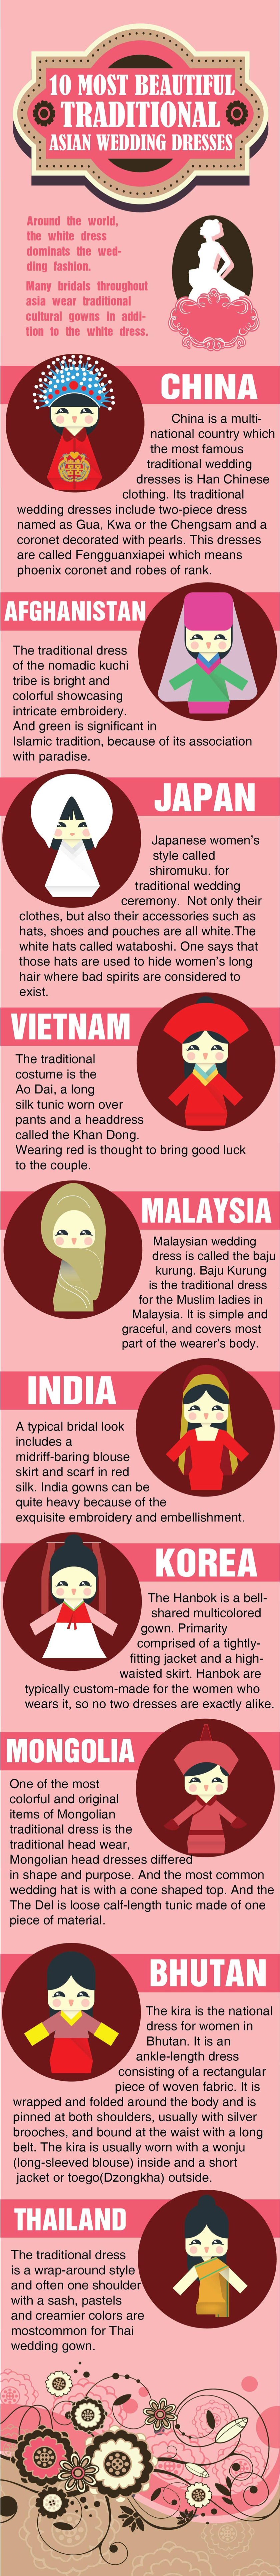 10 most beautiful traditional Asian wedding dresses